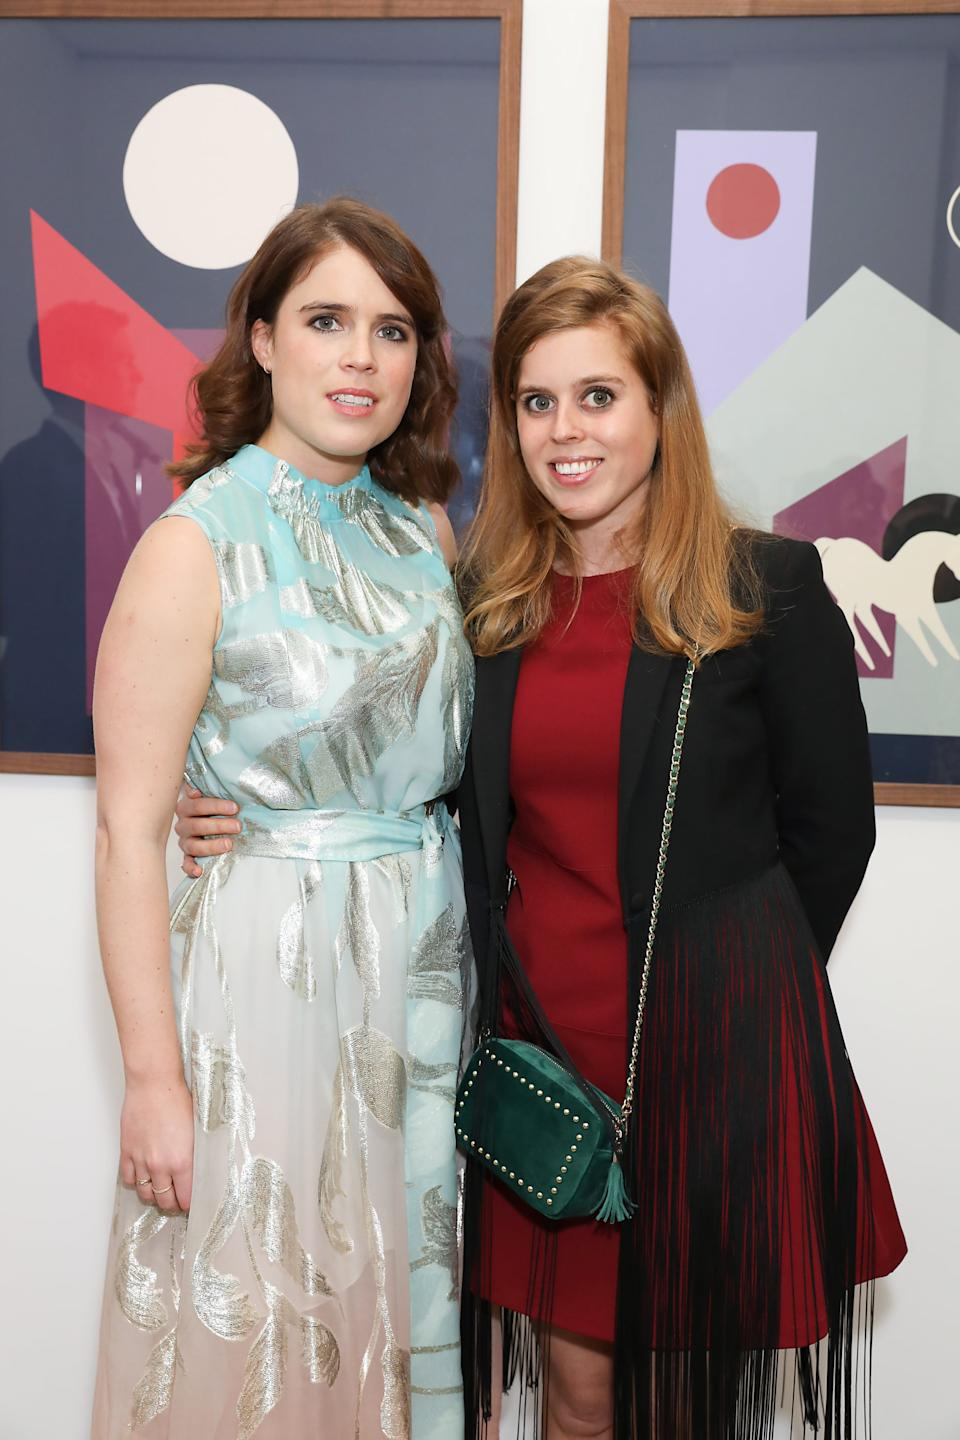 LONDON, ENGLAND - MAY 22: HRH Princess Eugenie of York (L) and HRH Princess Beatrice of York at the Animal Ball Art Show Private Viewing, presented by Elephant Family on May 22, 2019 in London, England. (Photo by David M. Benett/Dave Benett/Getty Images for Animal Ball)